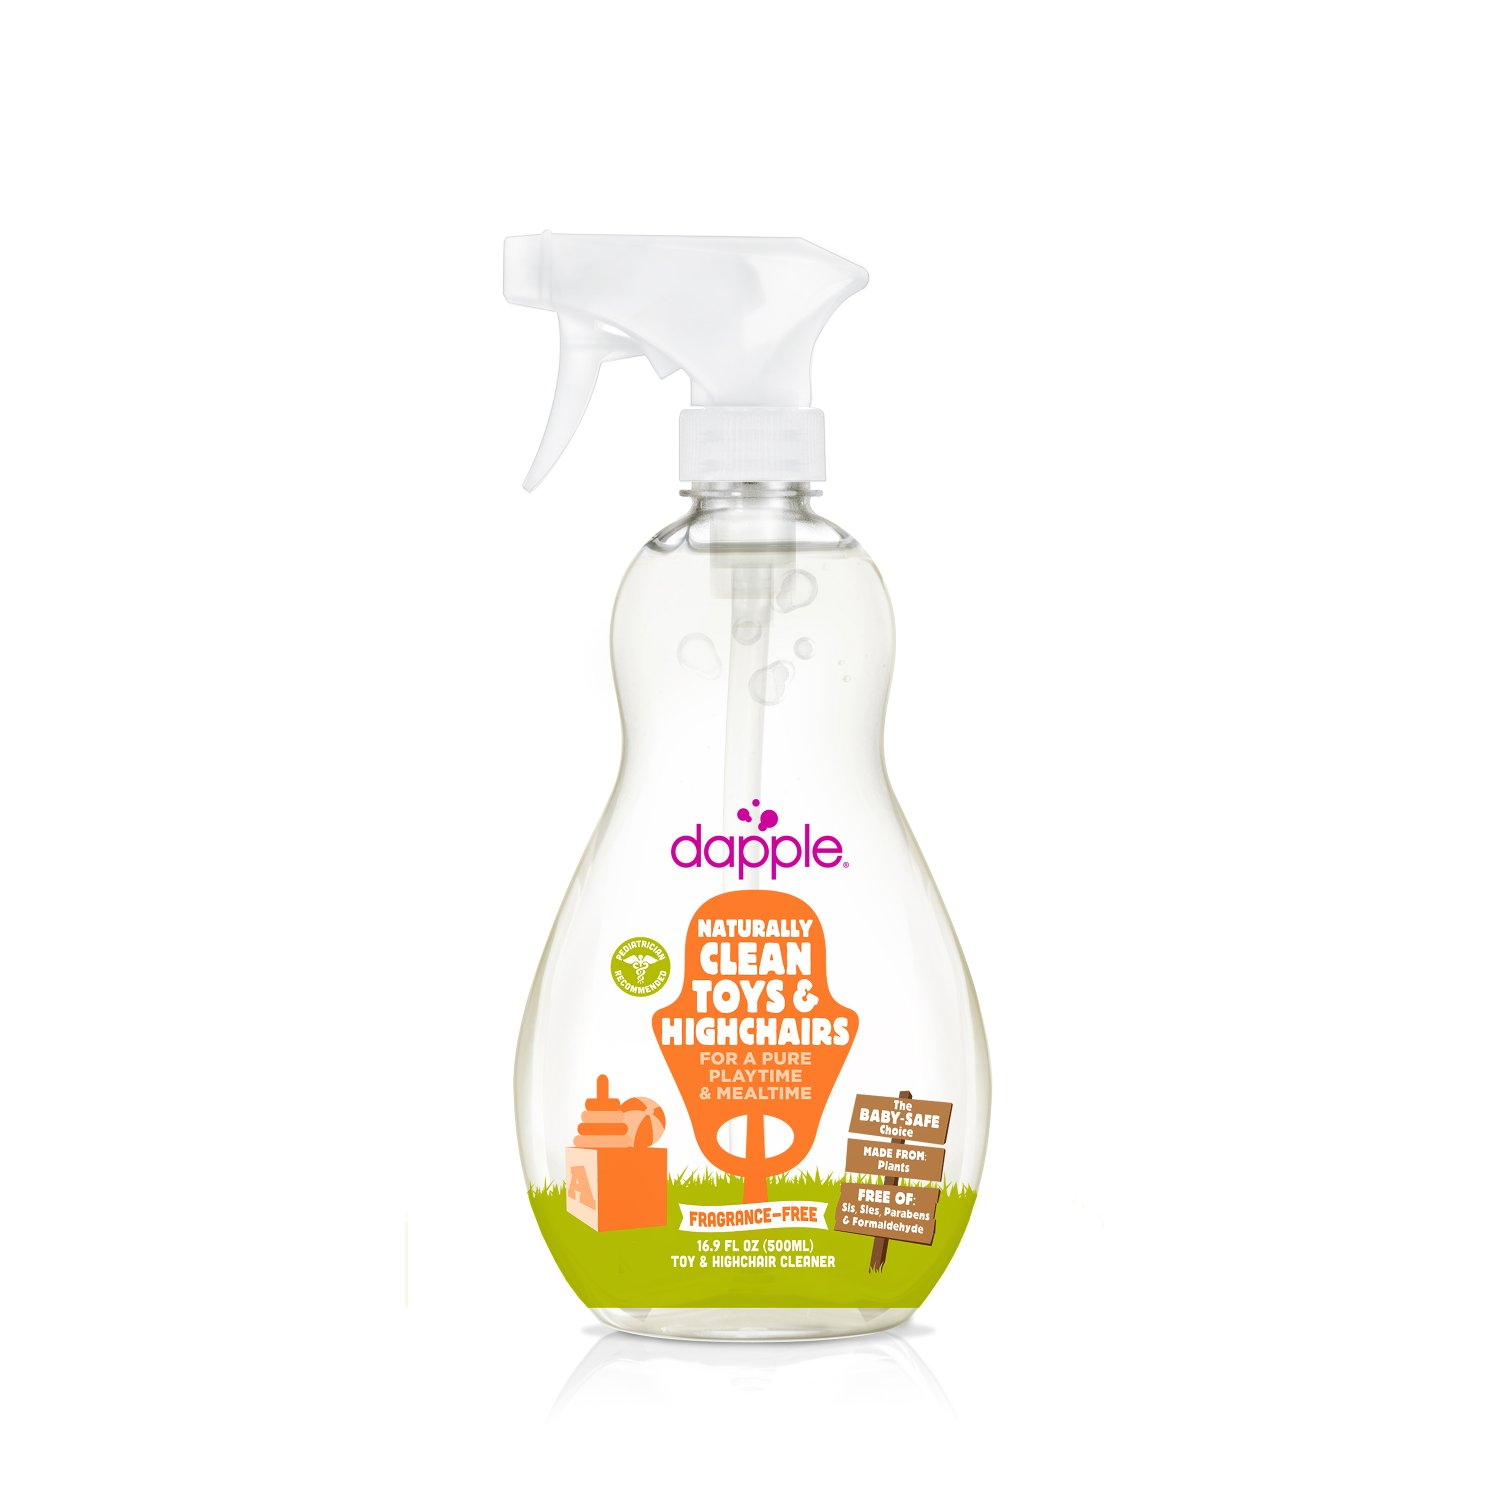 Quirks Marketing Philippines - Dapple - Naturally Clean Toys and High Chair Spray